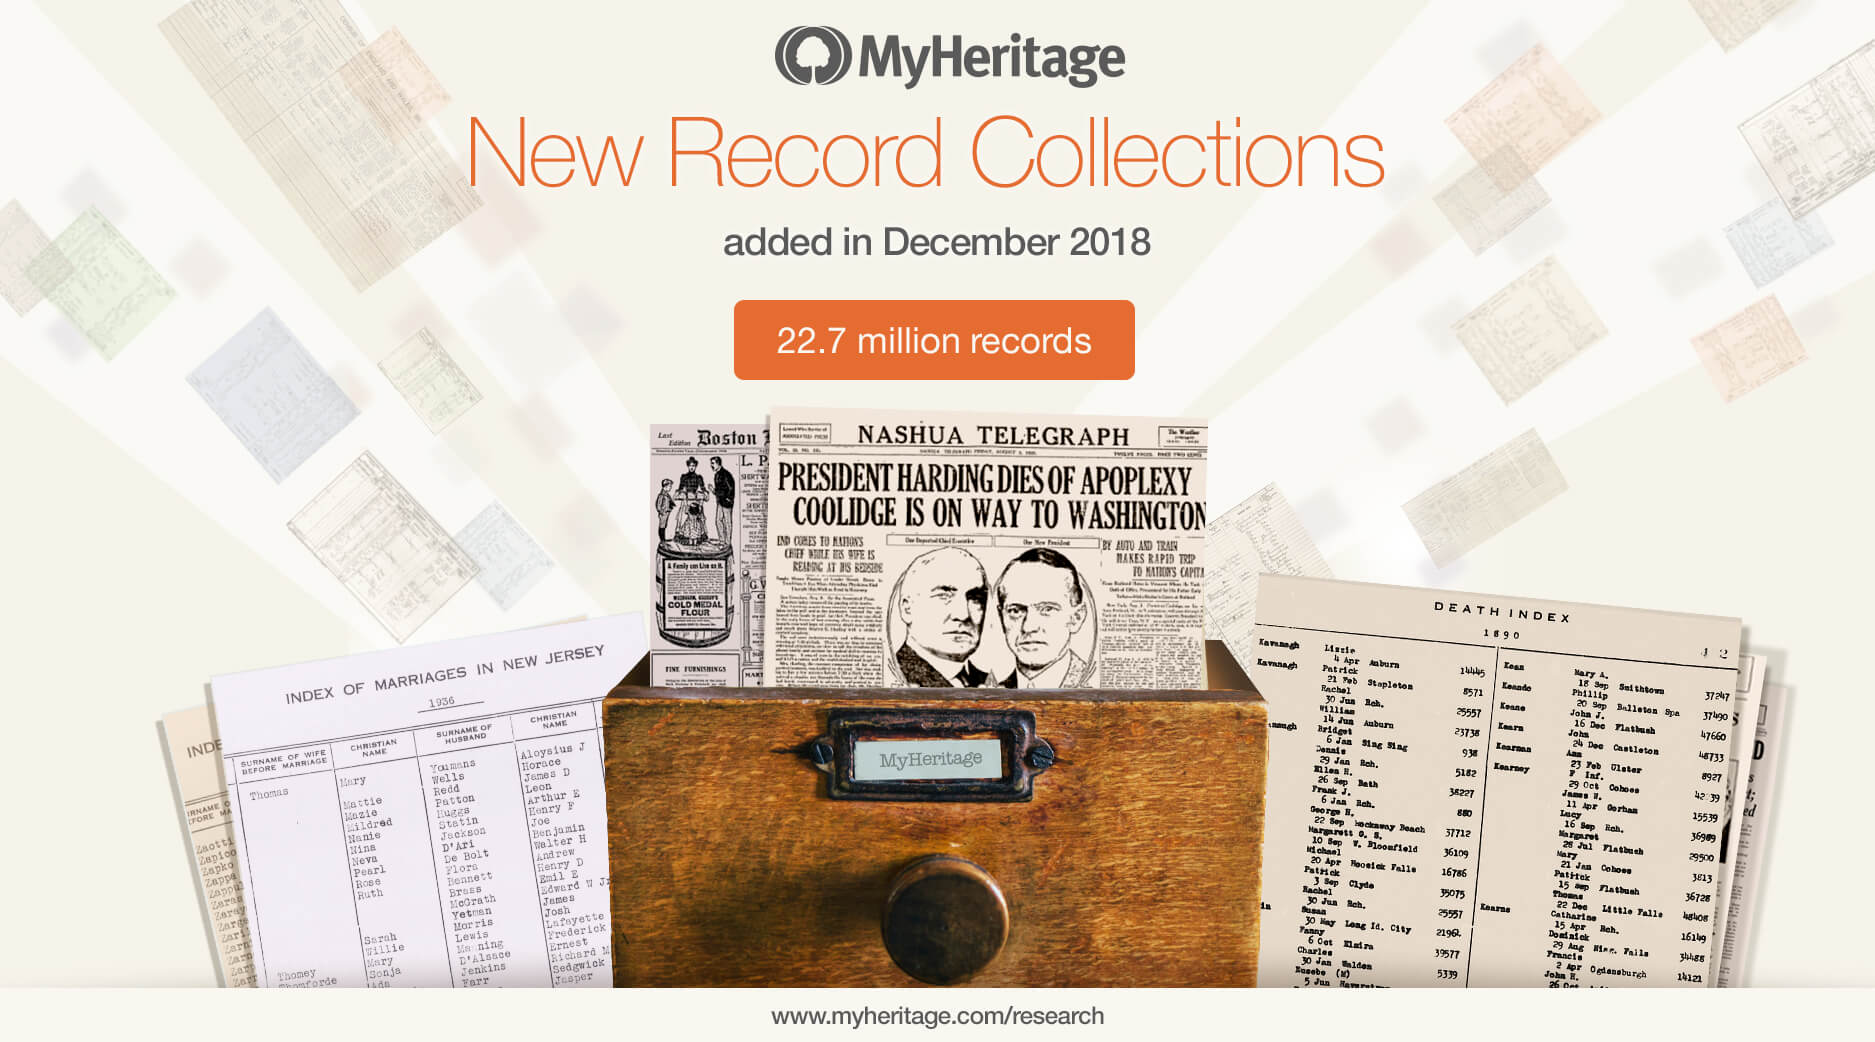 New Historical Records Added in December 2018